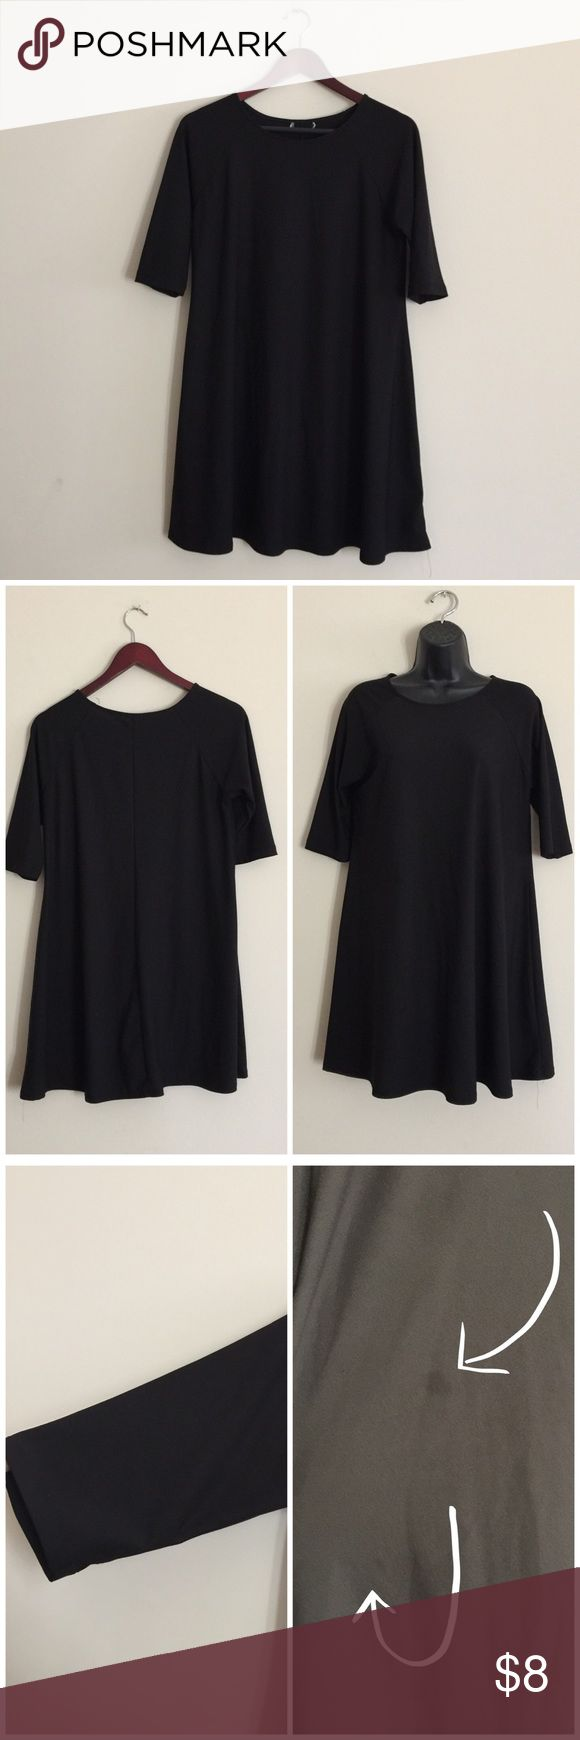 ❌Sold to a friend❌ Little black swing dress This has been well loved and needs a new home! Great to wear with or without leggings. Keep in mind it's a mini dress. Has a few small spots in the front, as shown in photos, from fabric softener. Sleeves are about 3/4. Material is polyester even though there's no tag. Flowy fit. Semi sheer.   B= 19 inches pit to pit | L= 33 inches.   ❌No trades ❌No PayPal  ❤️Smoke free home  ❤️24 hour reserves ❤️Pet friendly home  🚩Use bundle feature for a…